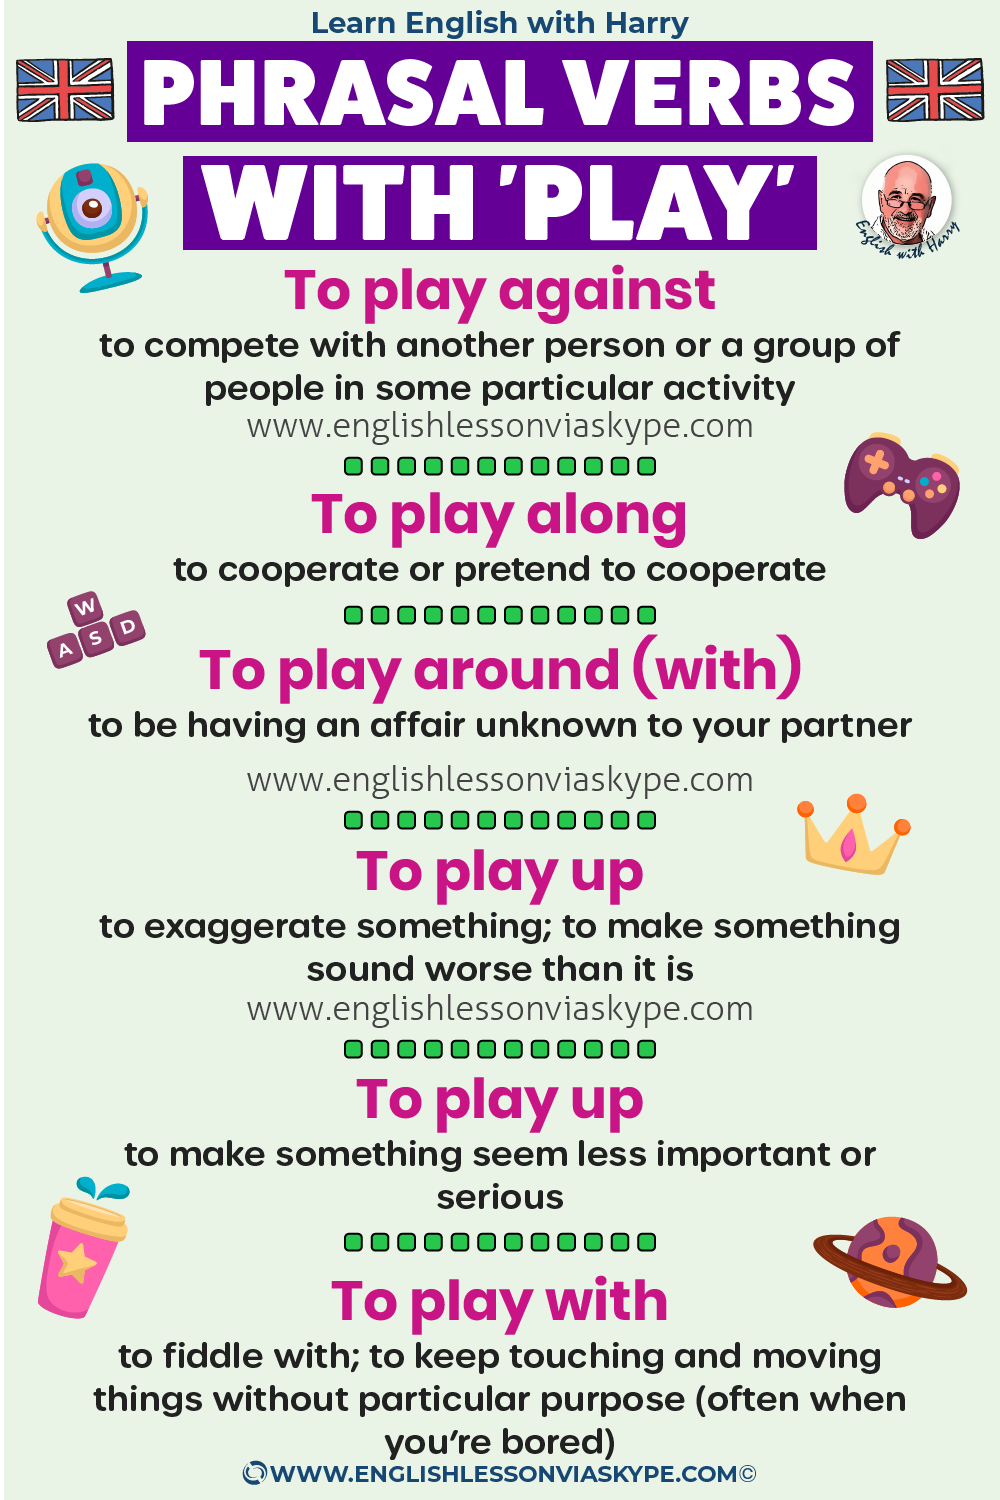 9 Phrasal verbs with play. Play along, play around, play down. Study advanced English. Zoom and Skype English lessons at www.englishlessonviaskype.com #learnenglish #englishlessons #EnglishTeacher #vocabulary #ingles #อังกฤษ #английский #aprenderingles #english #cursodeingles #учианглийский #vocabulário #dicasdeingles #learningenglish #ingilizce #englishgrammar #englishvocabulary #ielts #idiomas